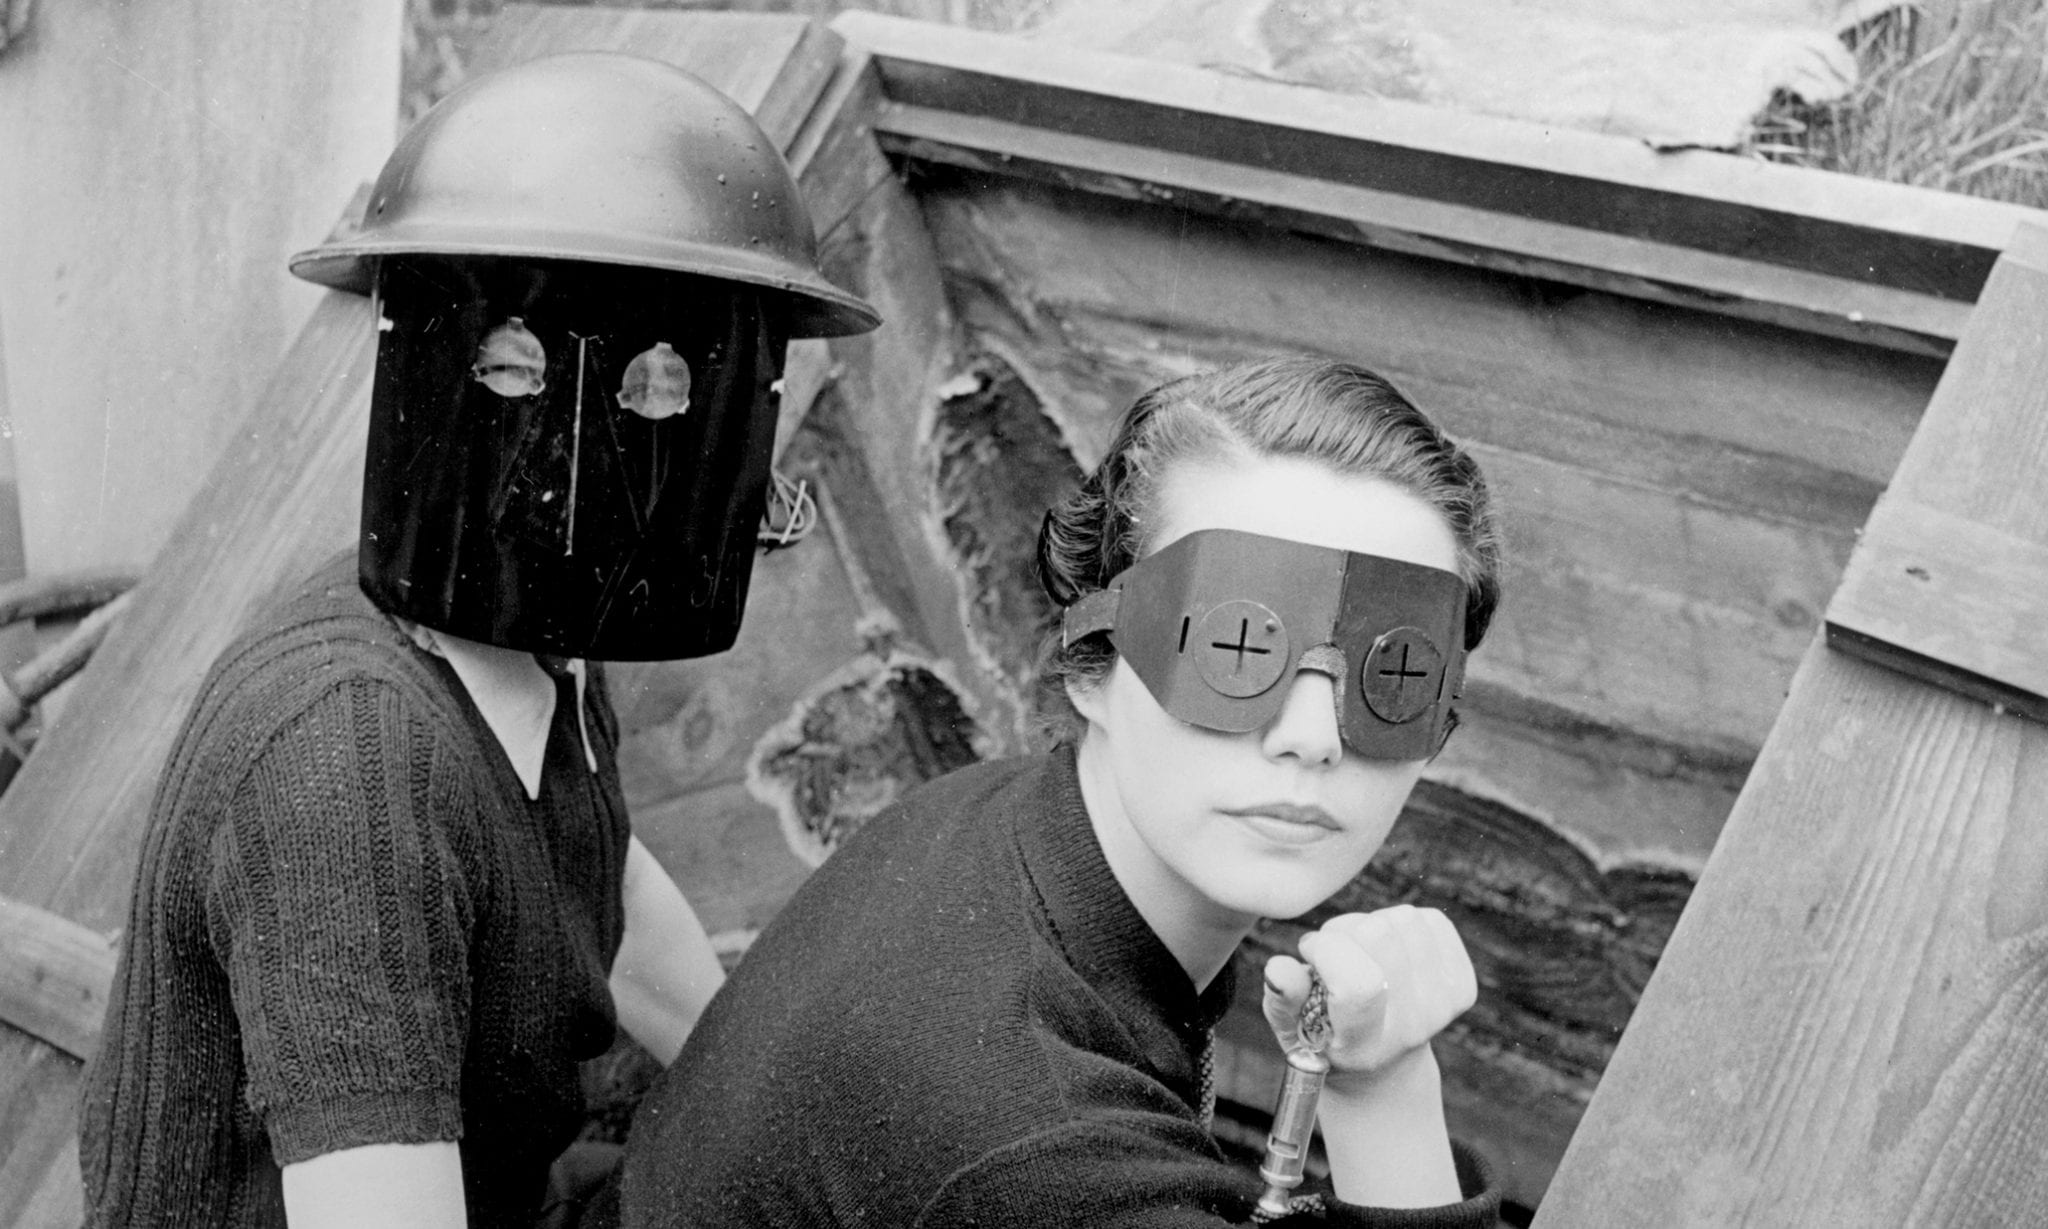 Piece Of The Week: Women With Fire Masks // Lee Miller